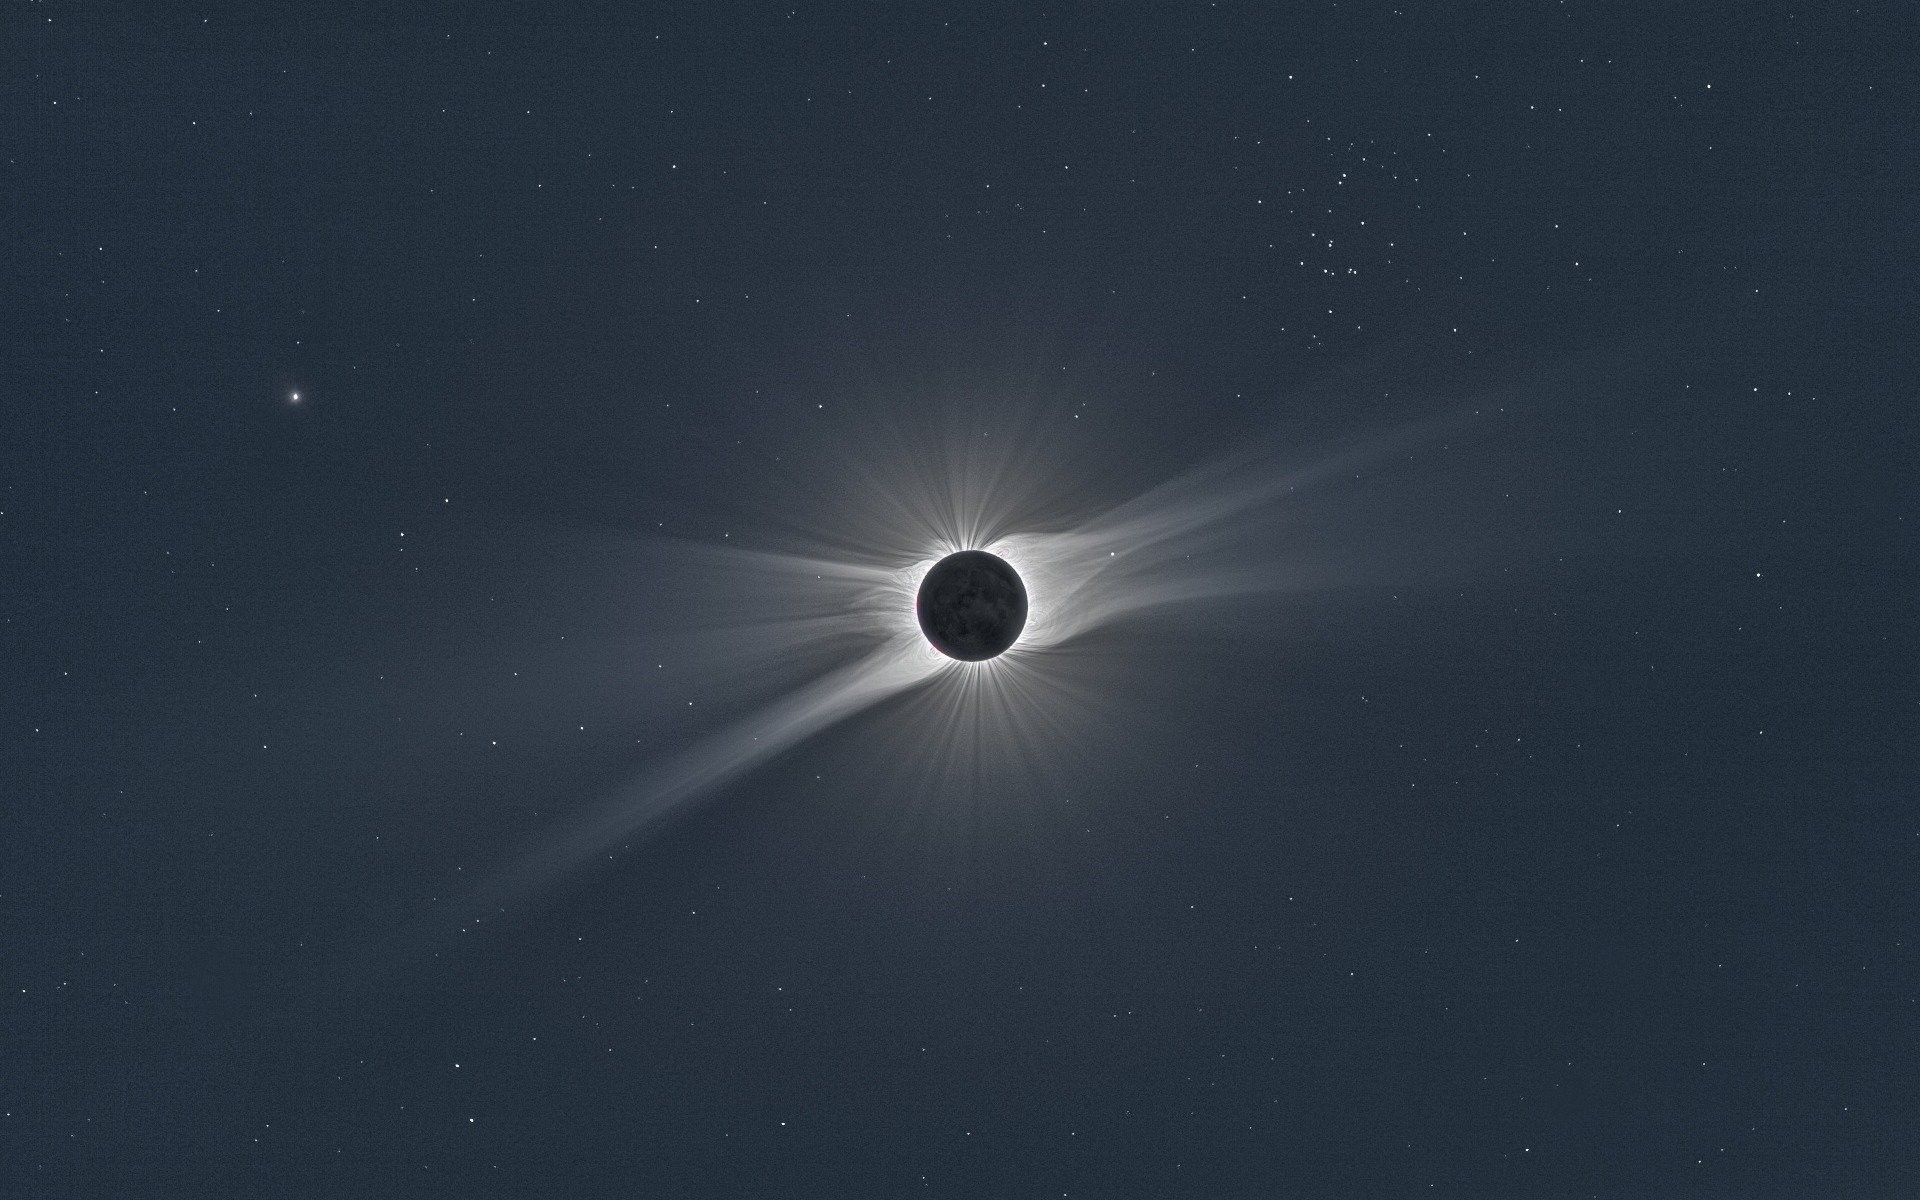 Eclipse-Space-Outer-Nature-Hd-1080p-Widescreen-wallpaper-wpc9004634